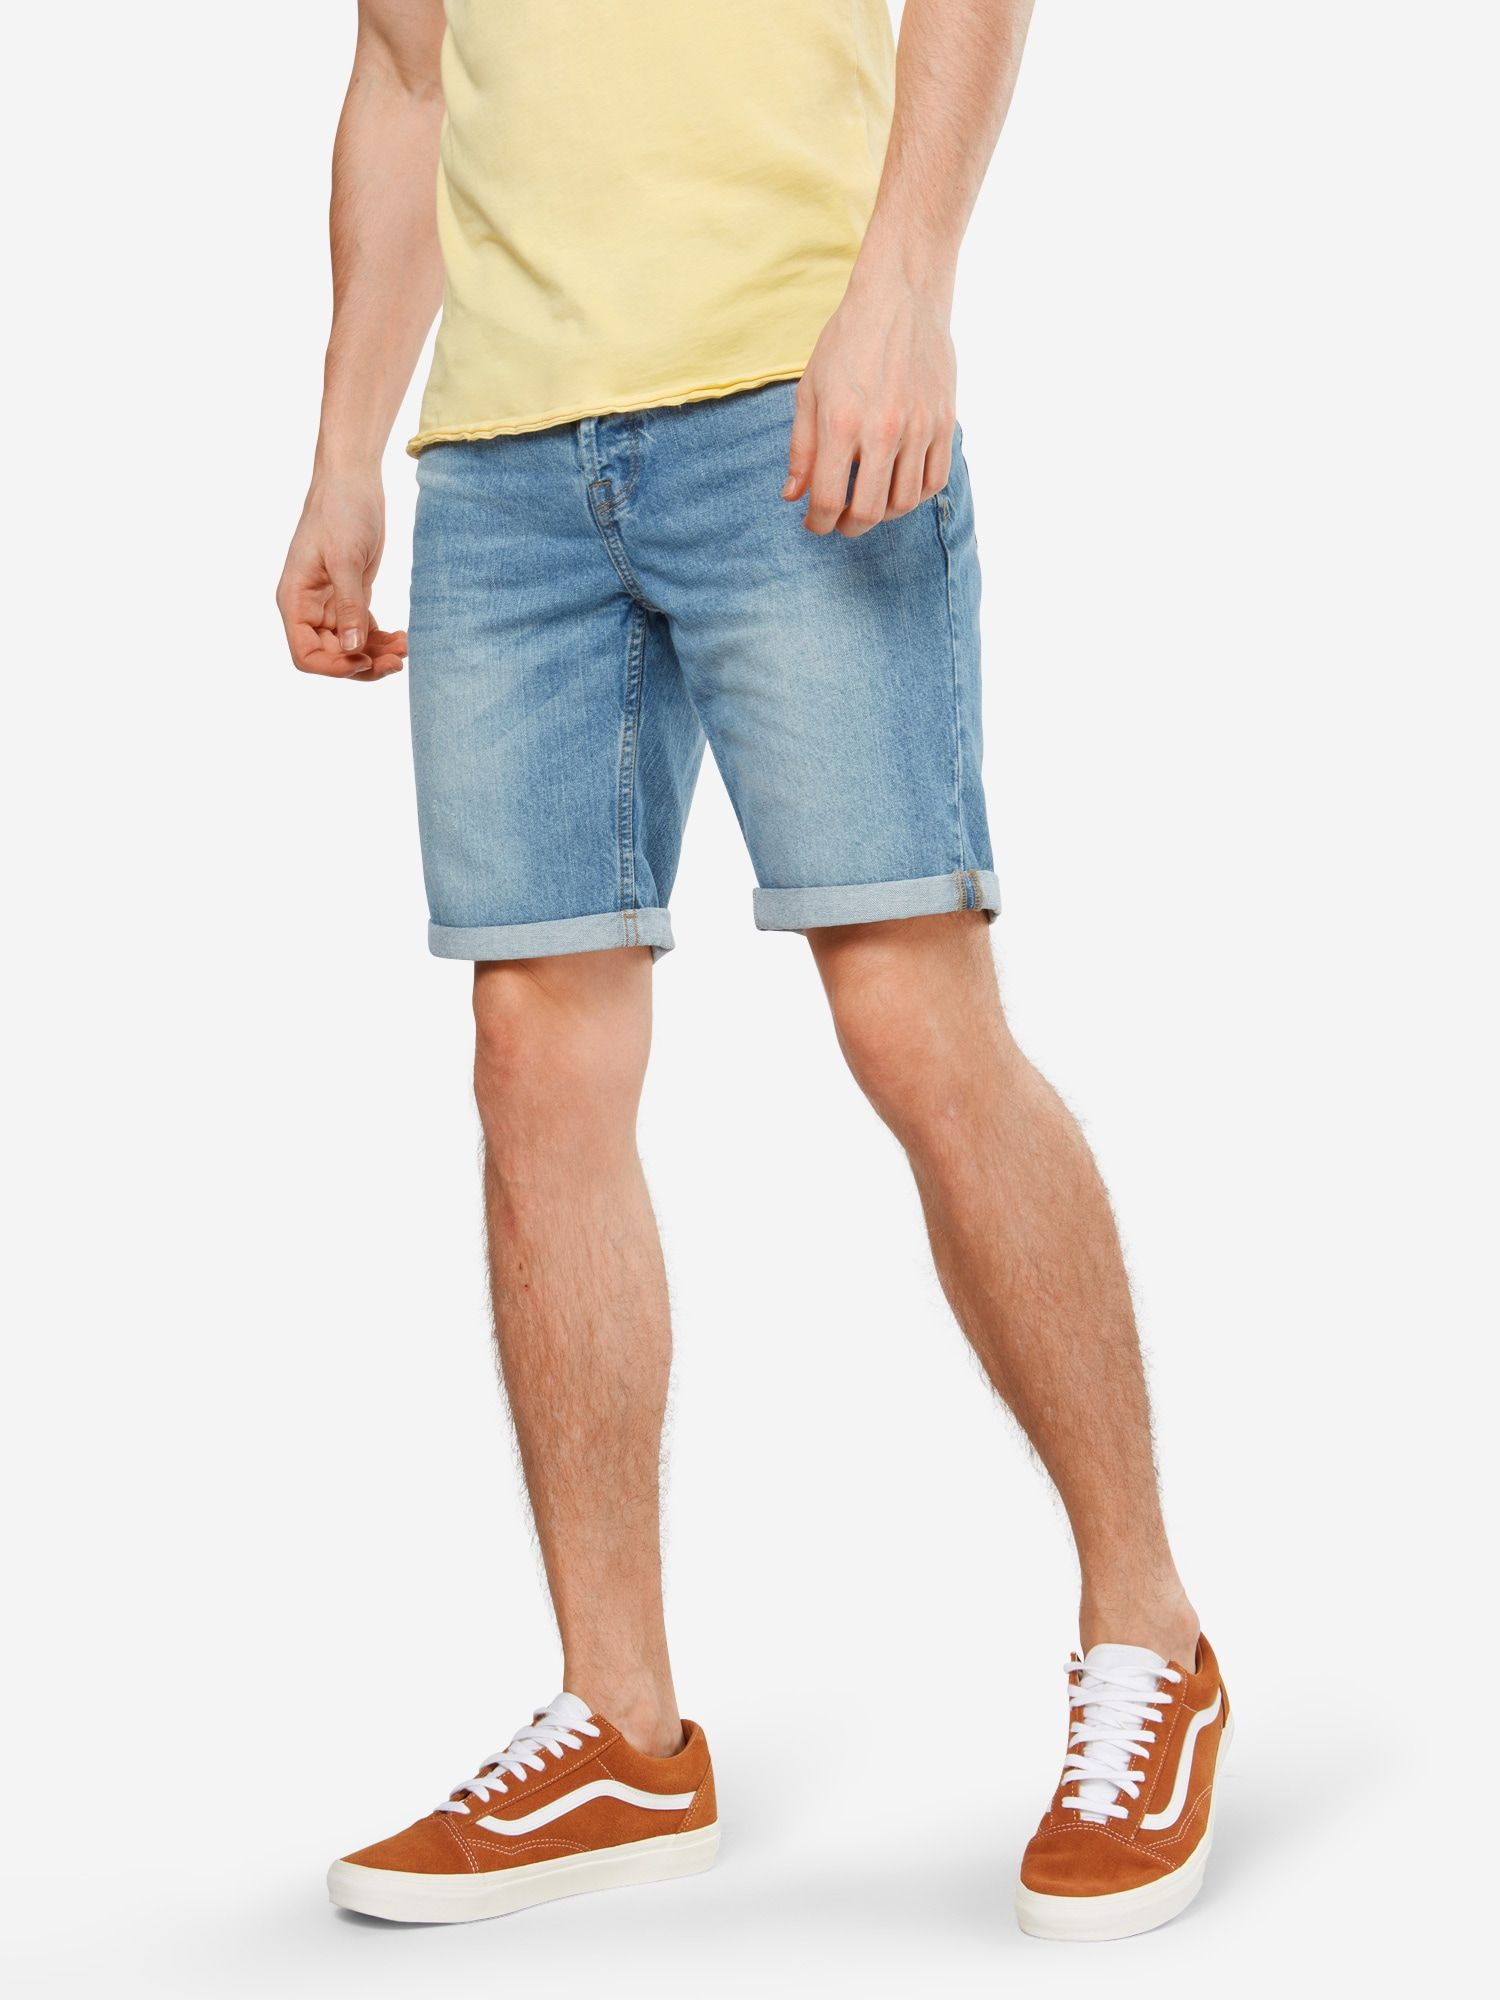 Only & Sons Jeans Shorts 'onsPLY SHORTS LIGHT BLUE PK 8614' Herren, Blue Denim, Größe 33 #lightblueshorts